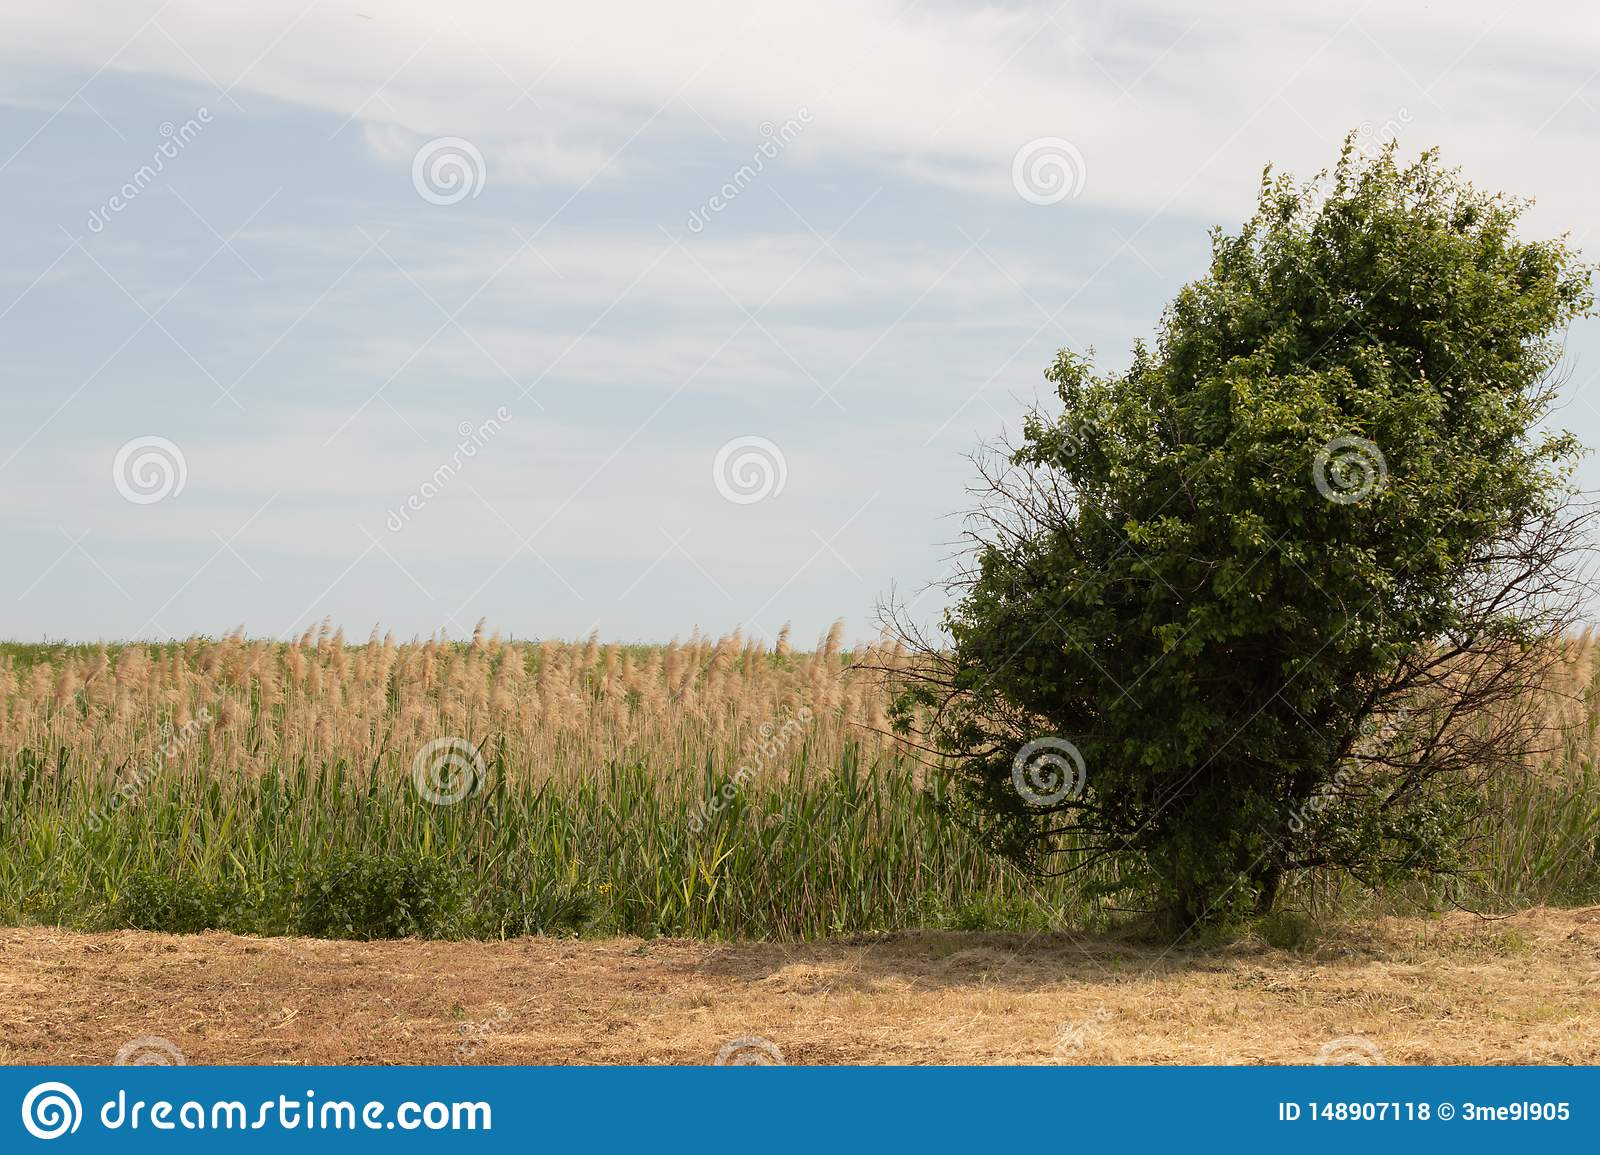 A lonely growing tree in the middle of a field in the background is a hall